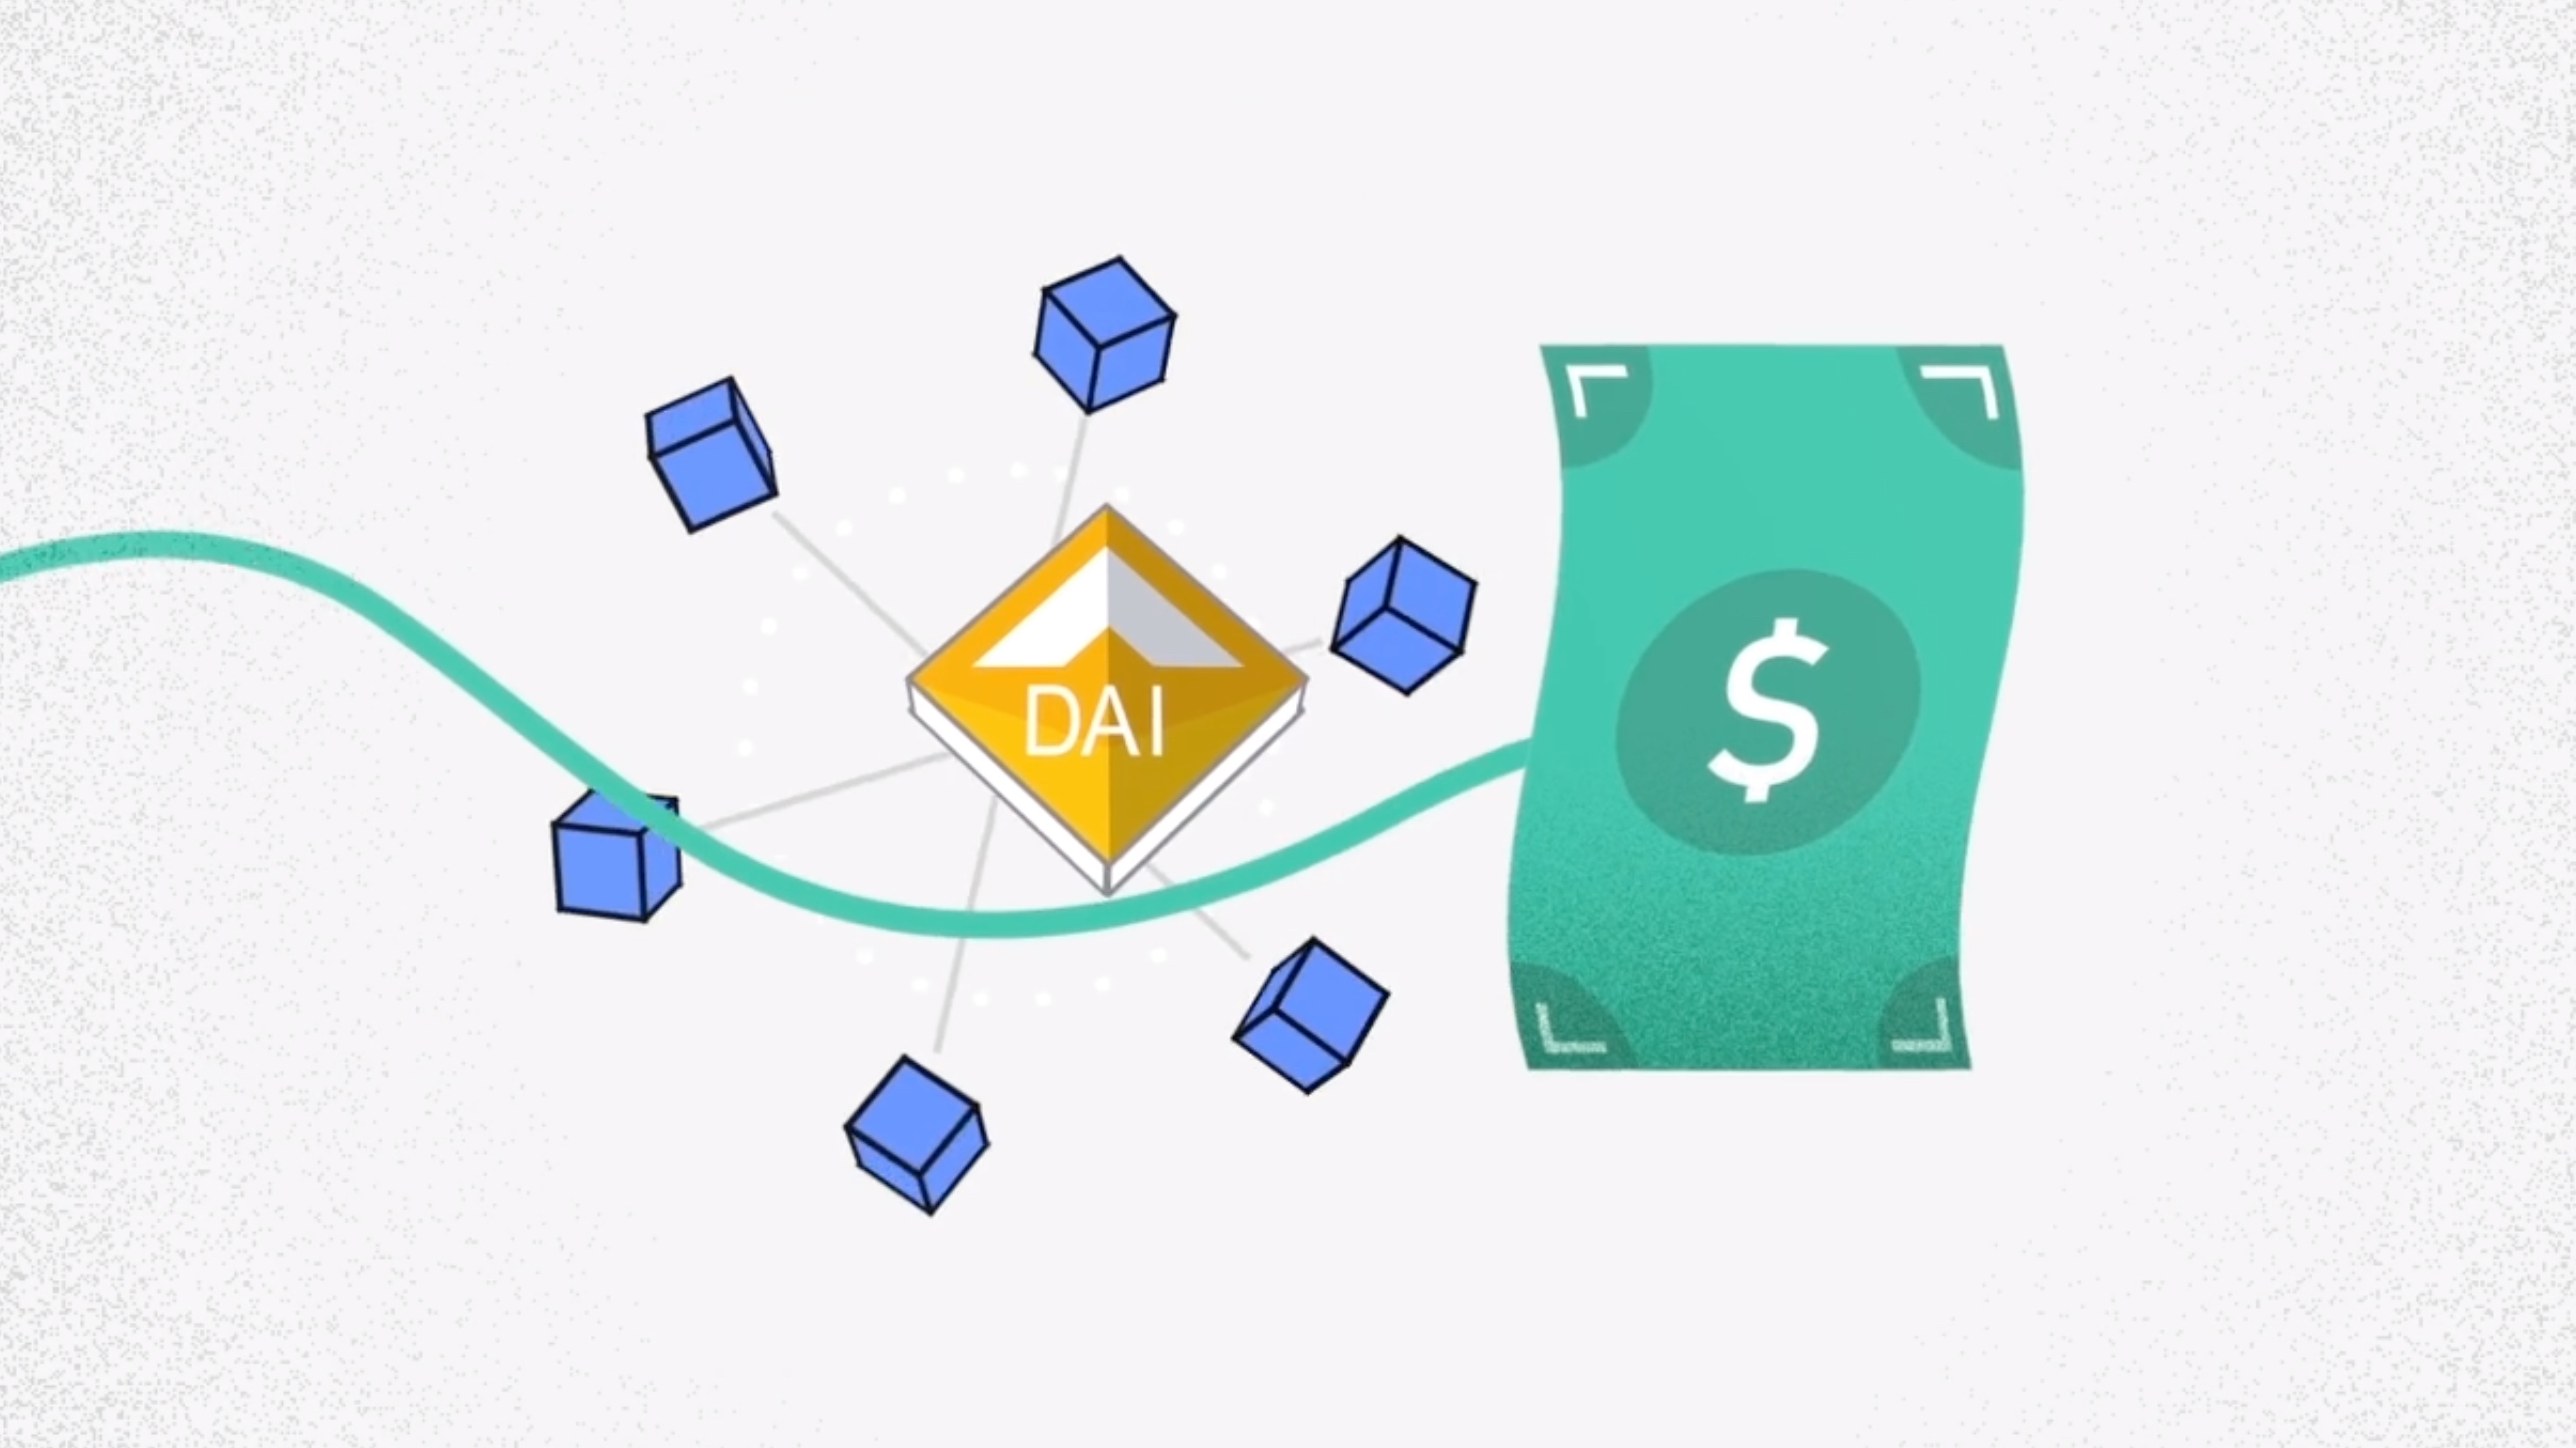 Coinsource Adds Dai Stablecoin to Bitcoin ATM in Preparation of